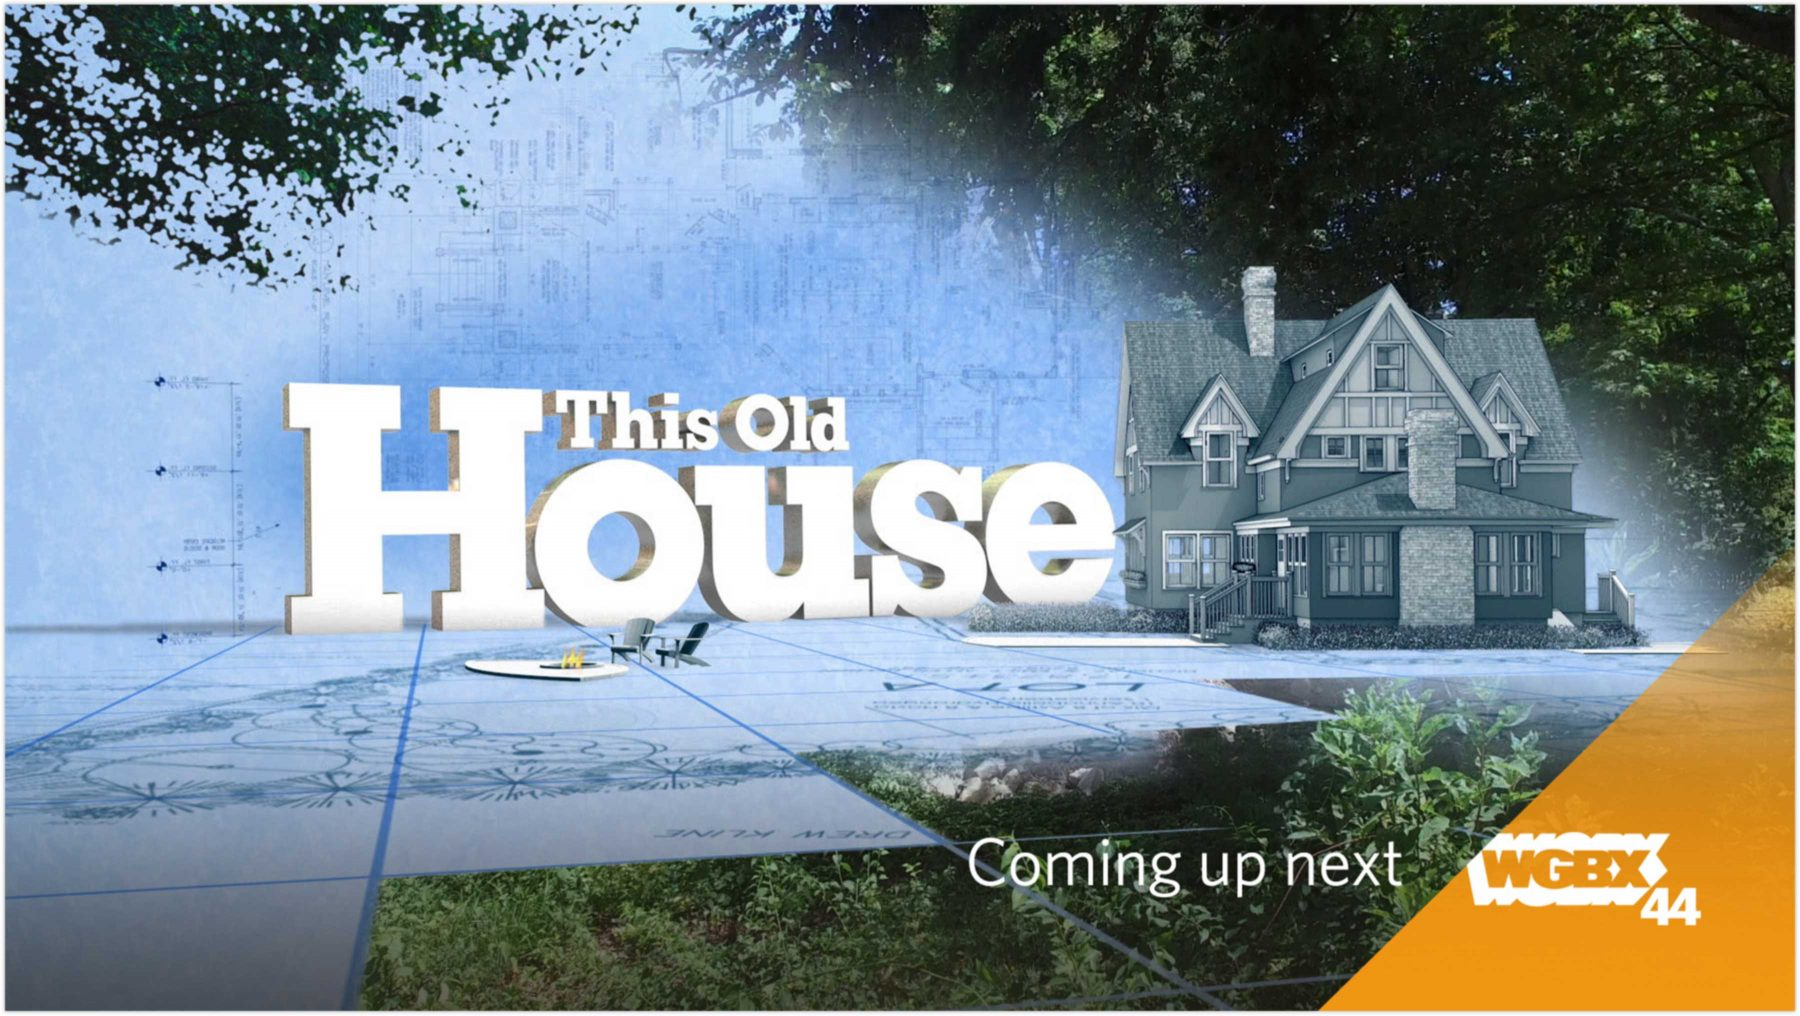 WGBH This Old House digital advertisement